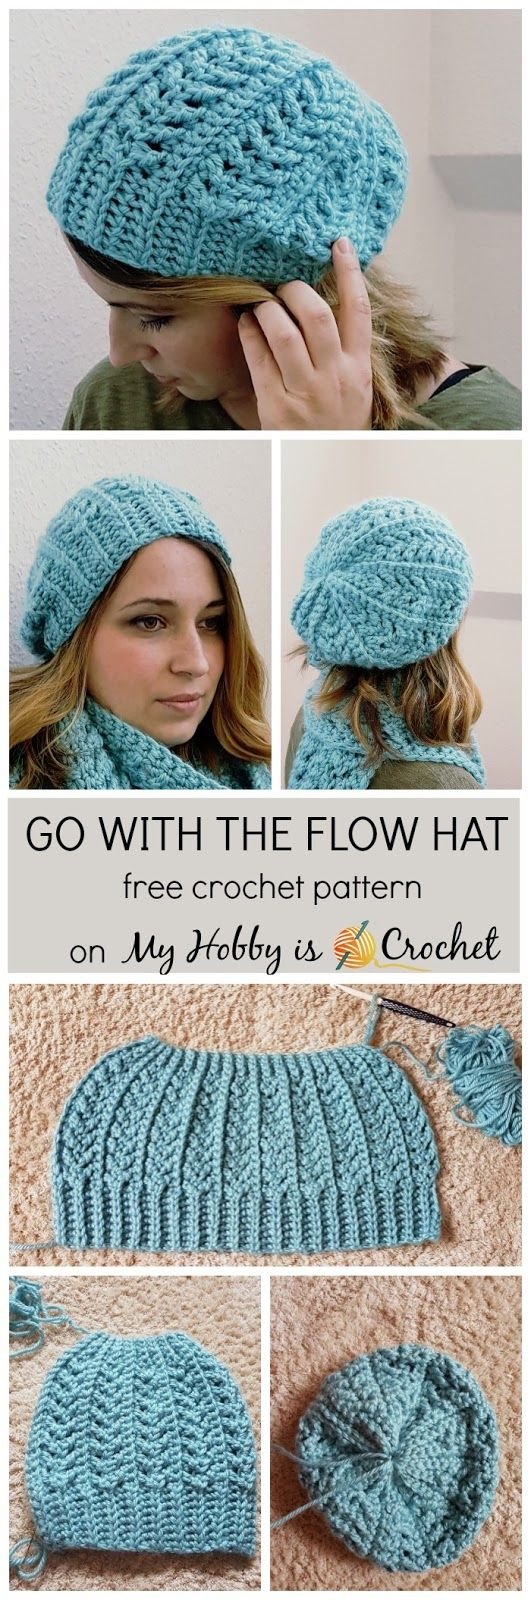 Go with the Flow Hat - Free Crochet Pattern | Your Favorite Crochet ...